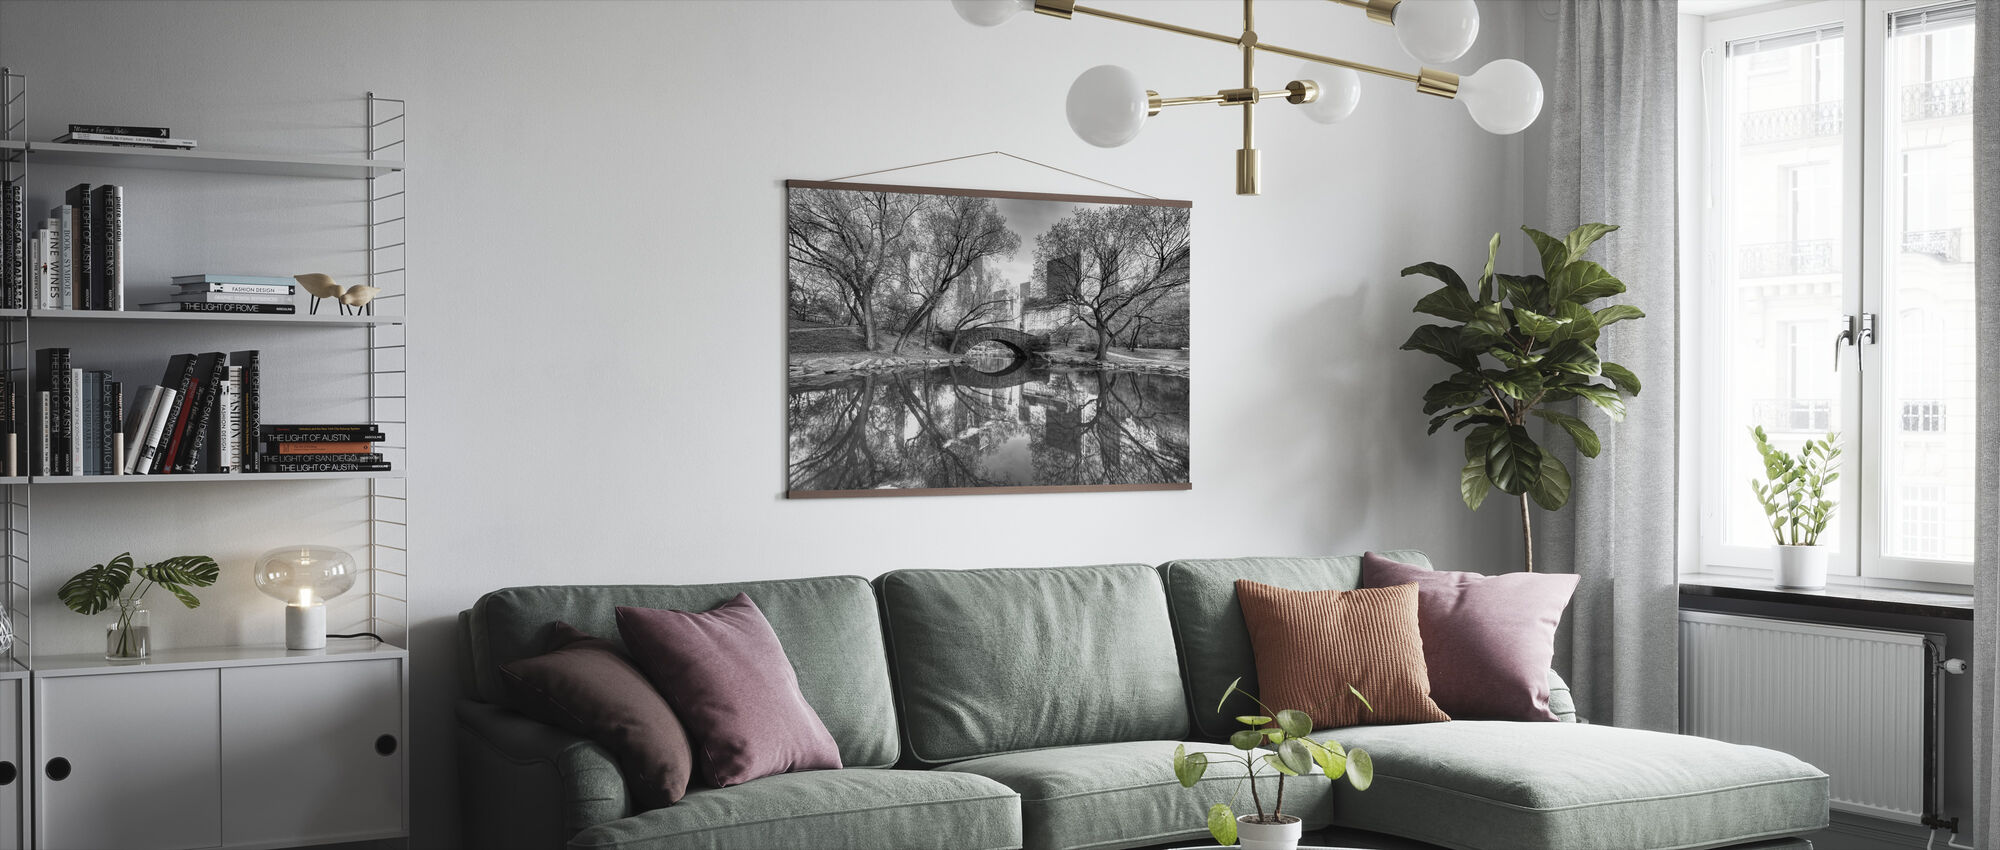 Bridge in Central Park - Poster - Living Room